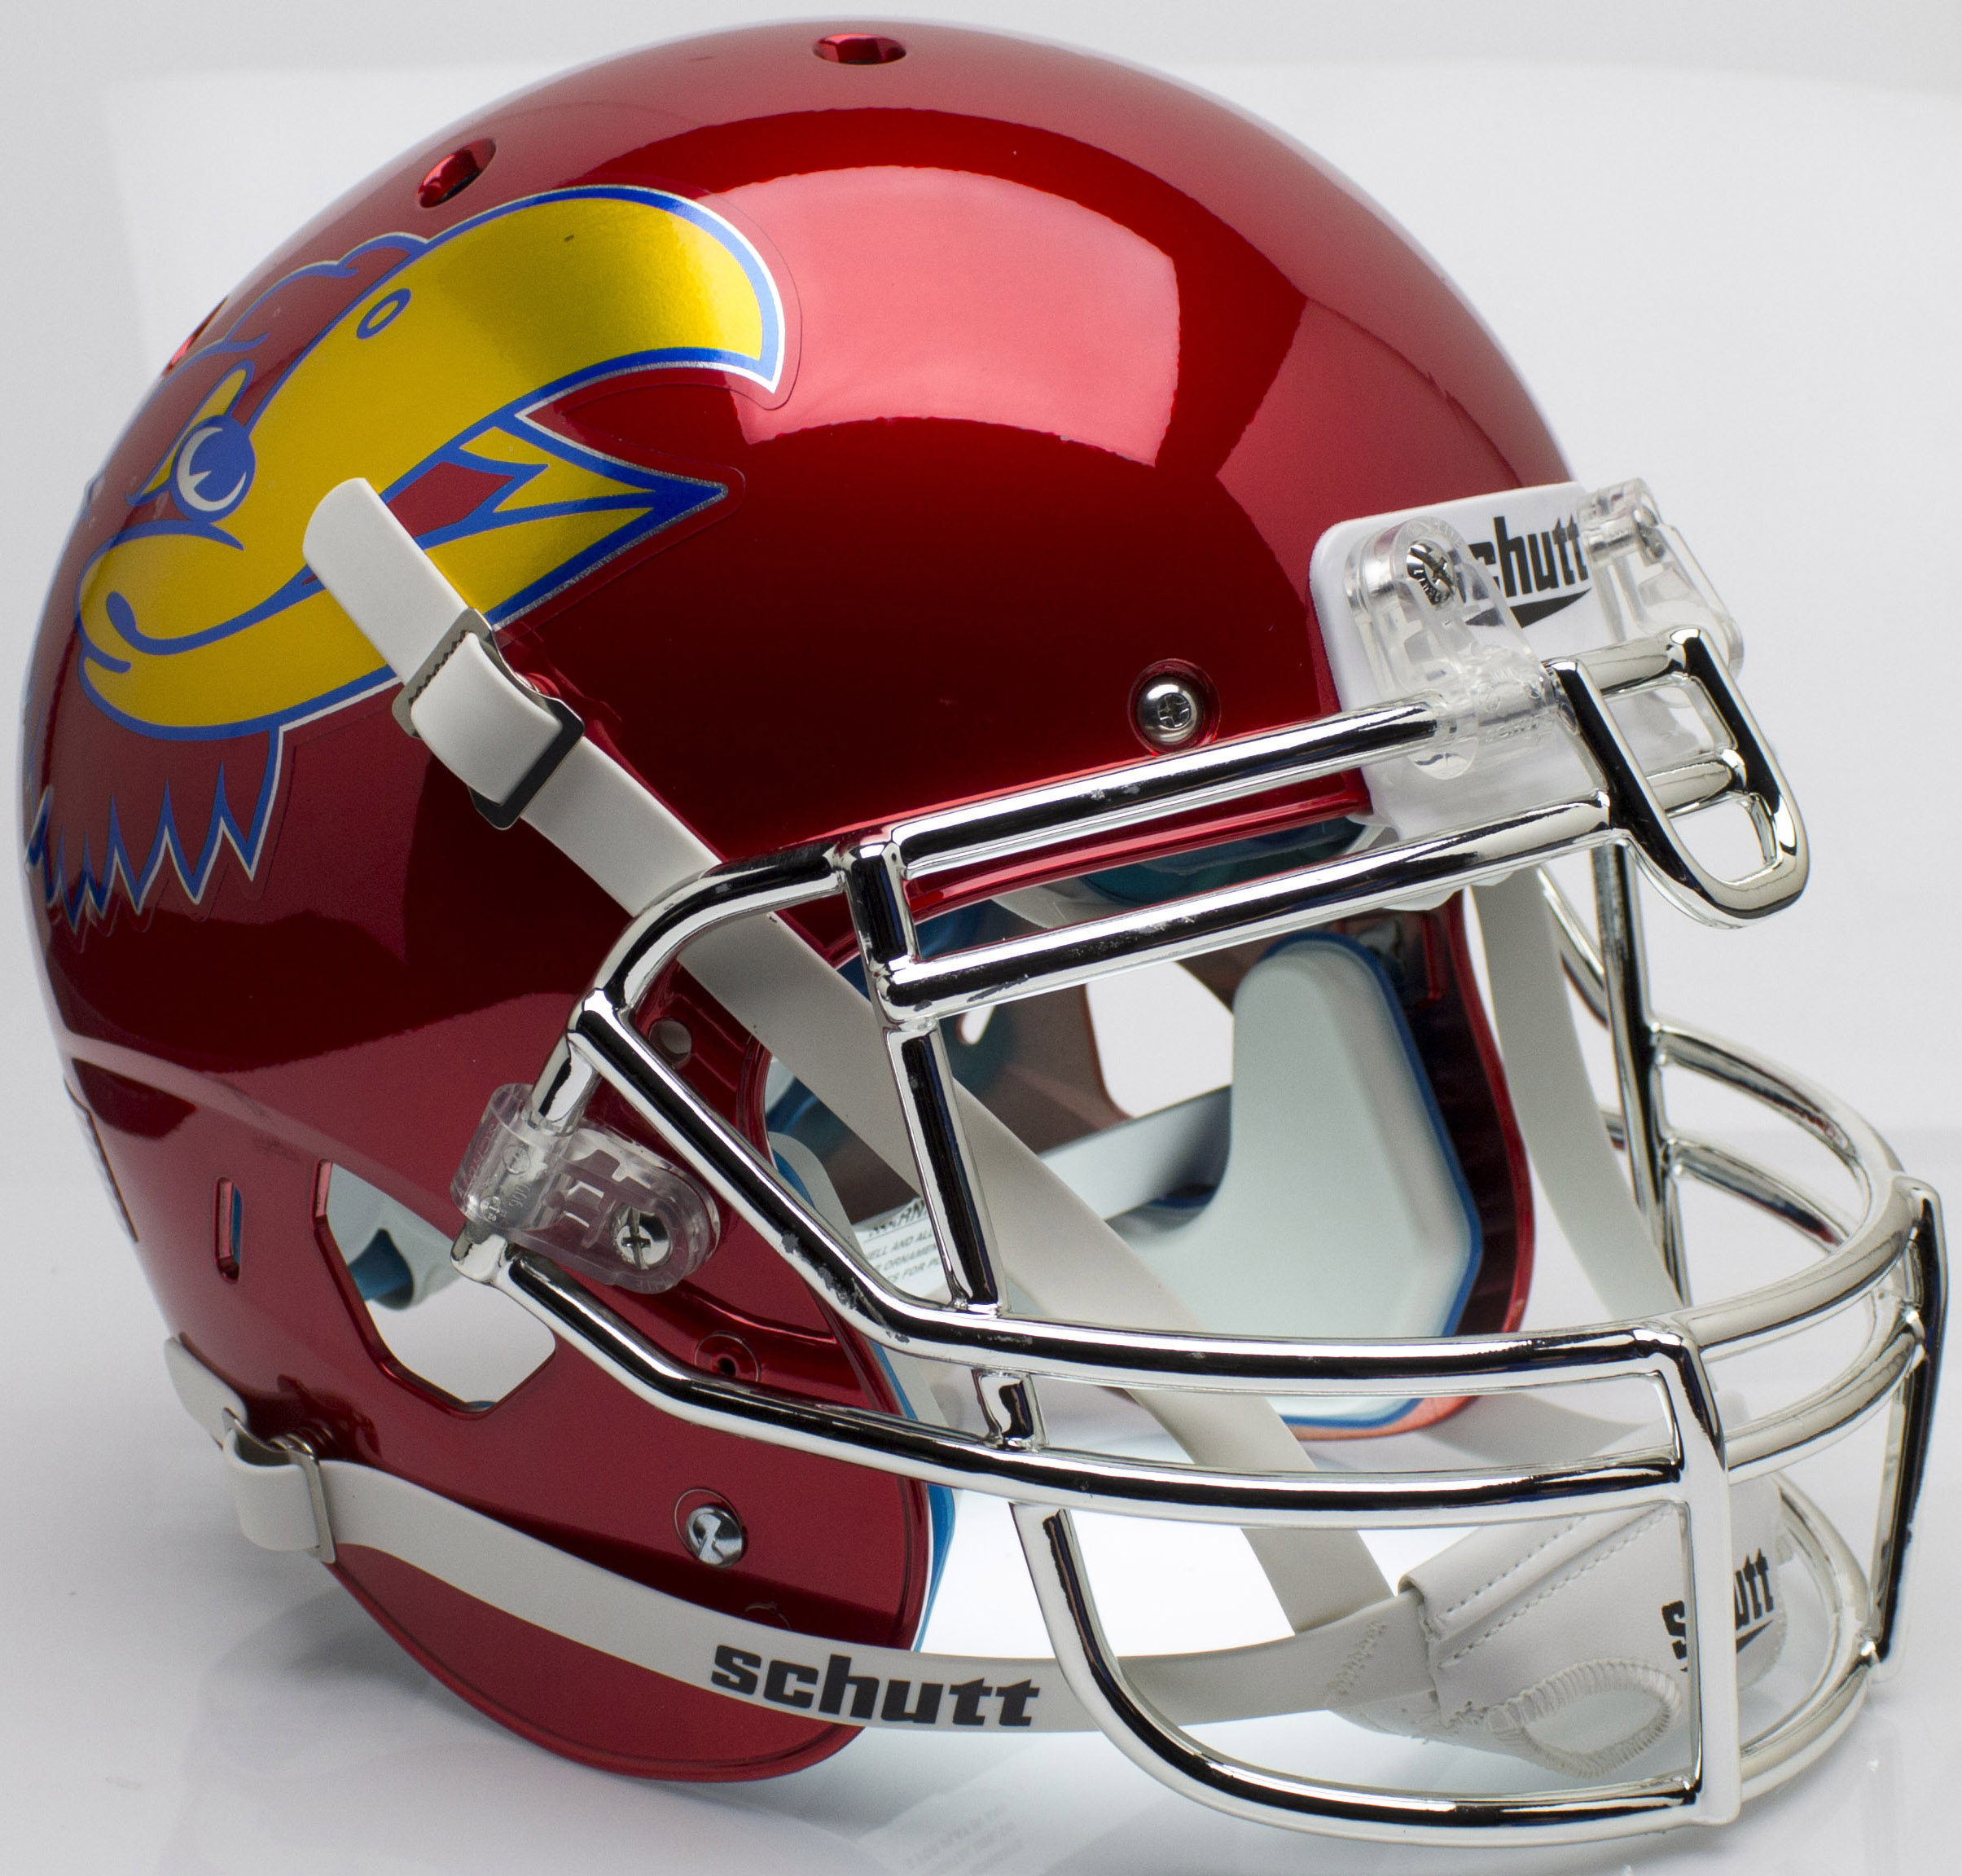 Kansas Jayhawks Authentic College XP Football Helmet Schutt <B>Scarlet Red Large Decal</B>